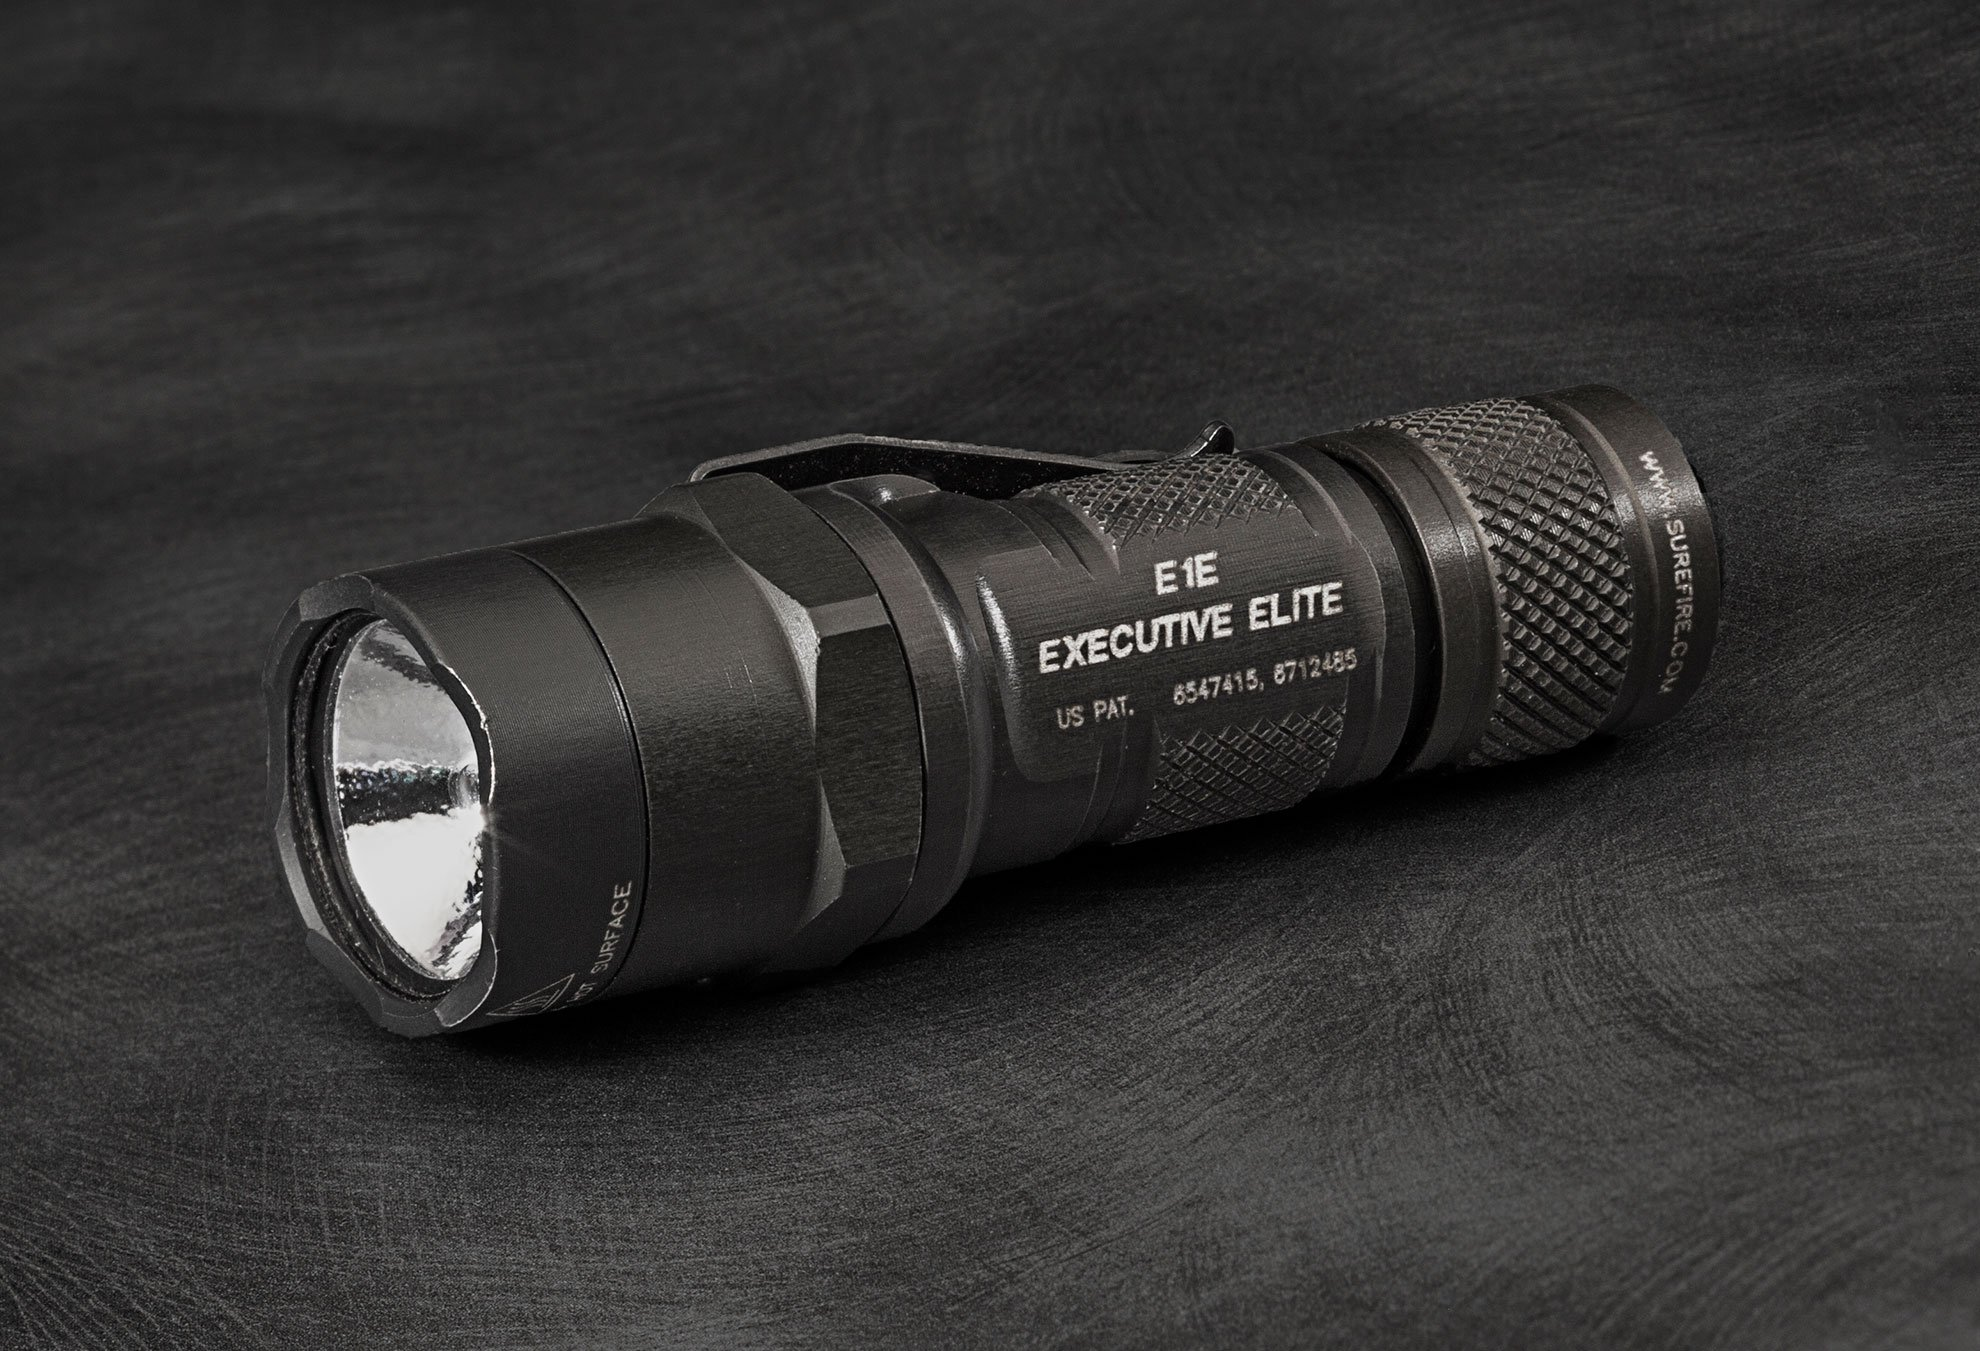 SureFire E1E Executive Elite flashlight